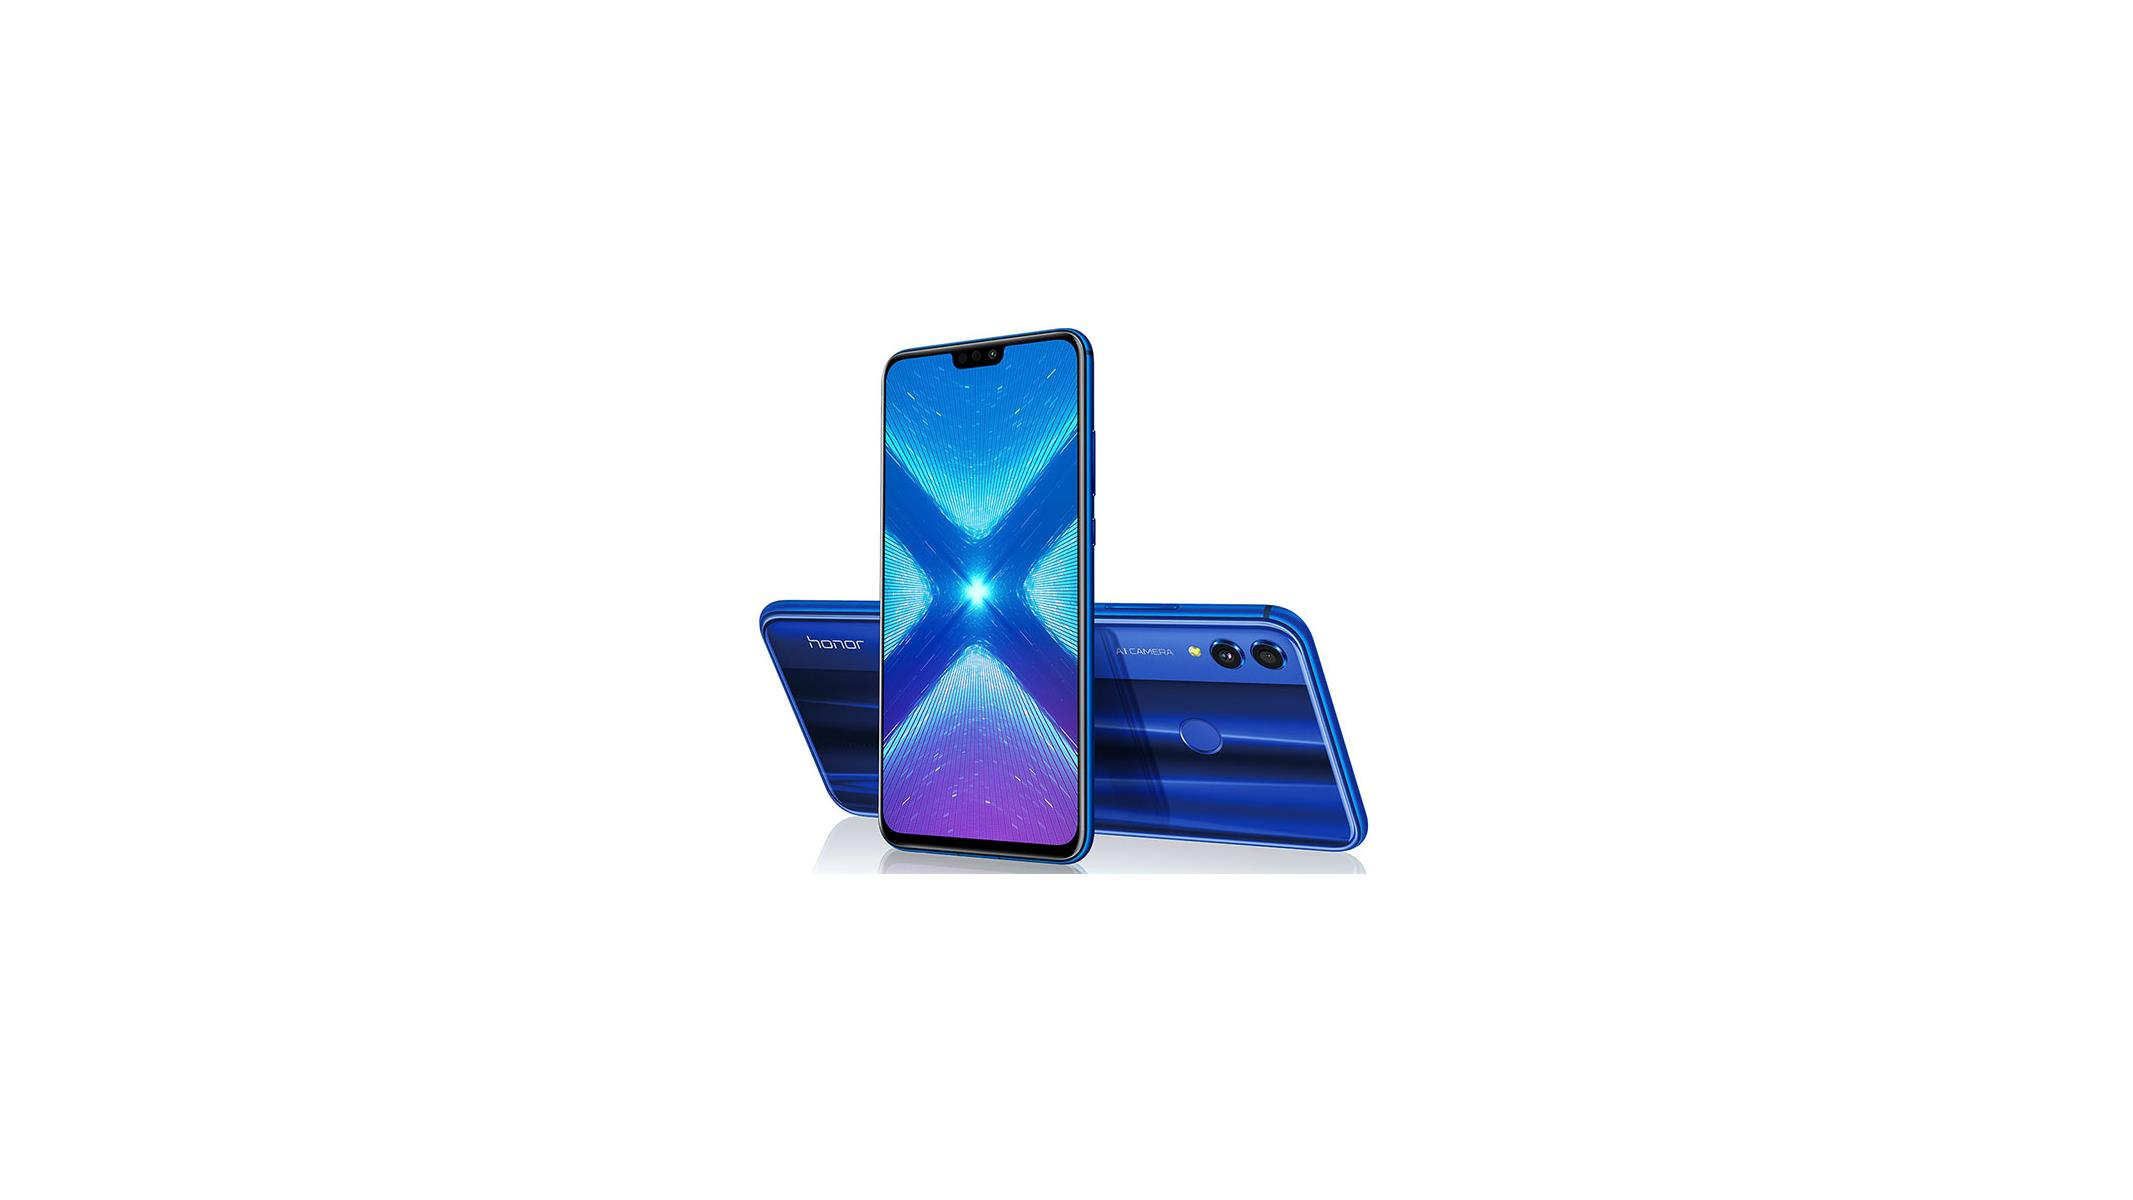 Huawei Announces Honor 8X With 6 5-inch Display, 91% Screen